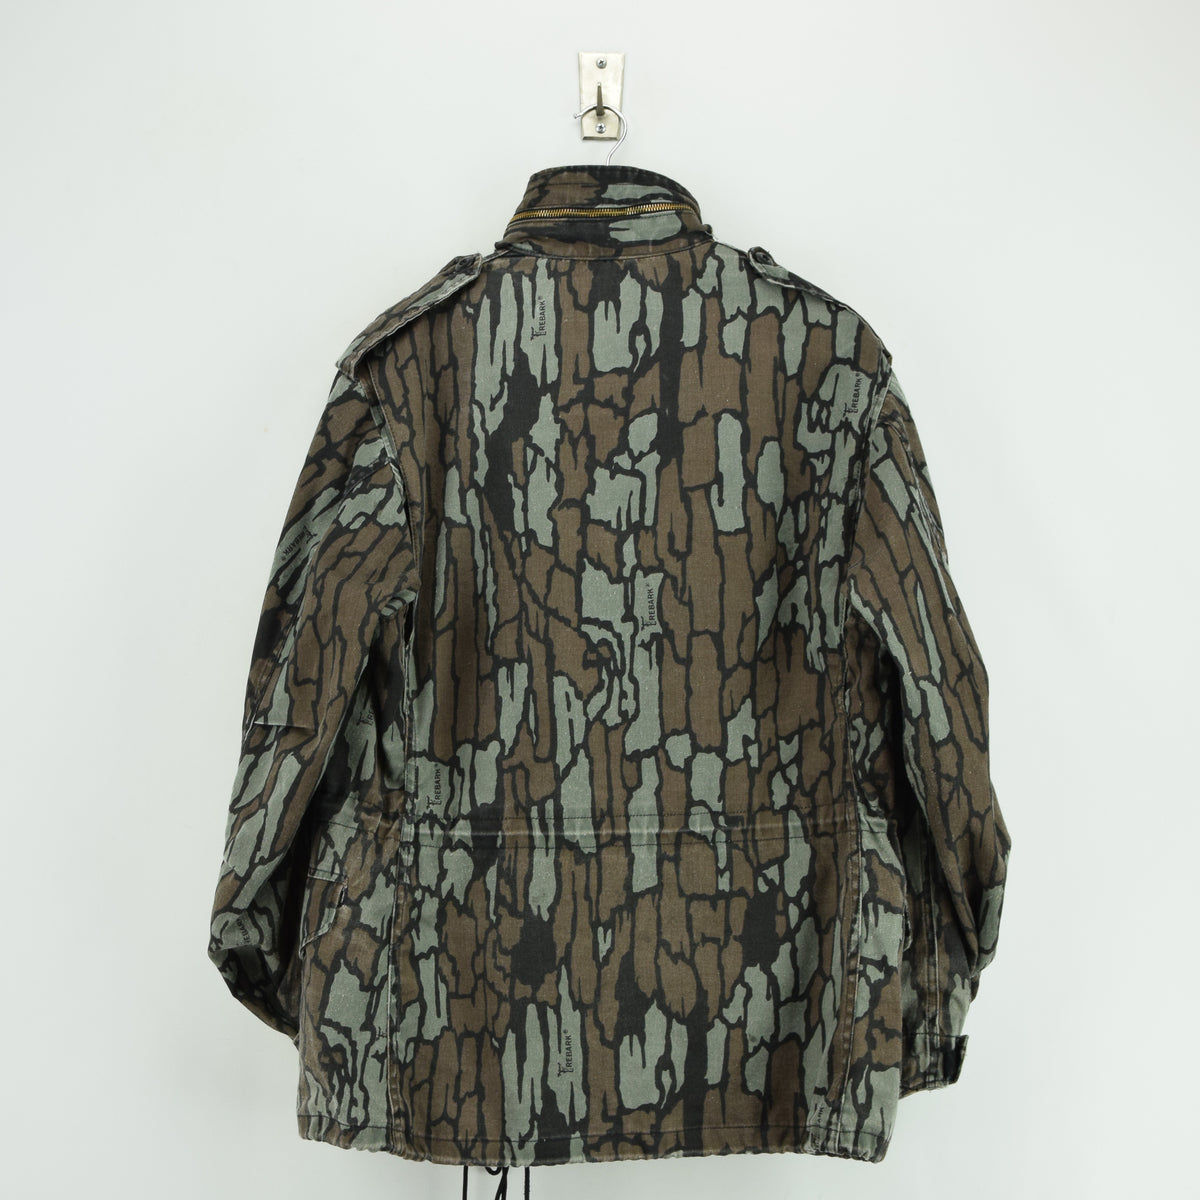 Vintage M-65 Alpha Industries Trebark Camouflage Field Coat Army Jacket M Reg back